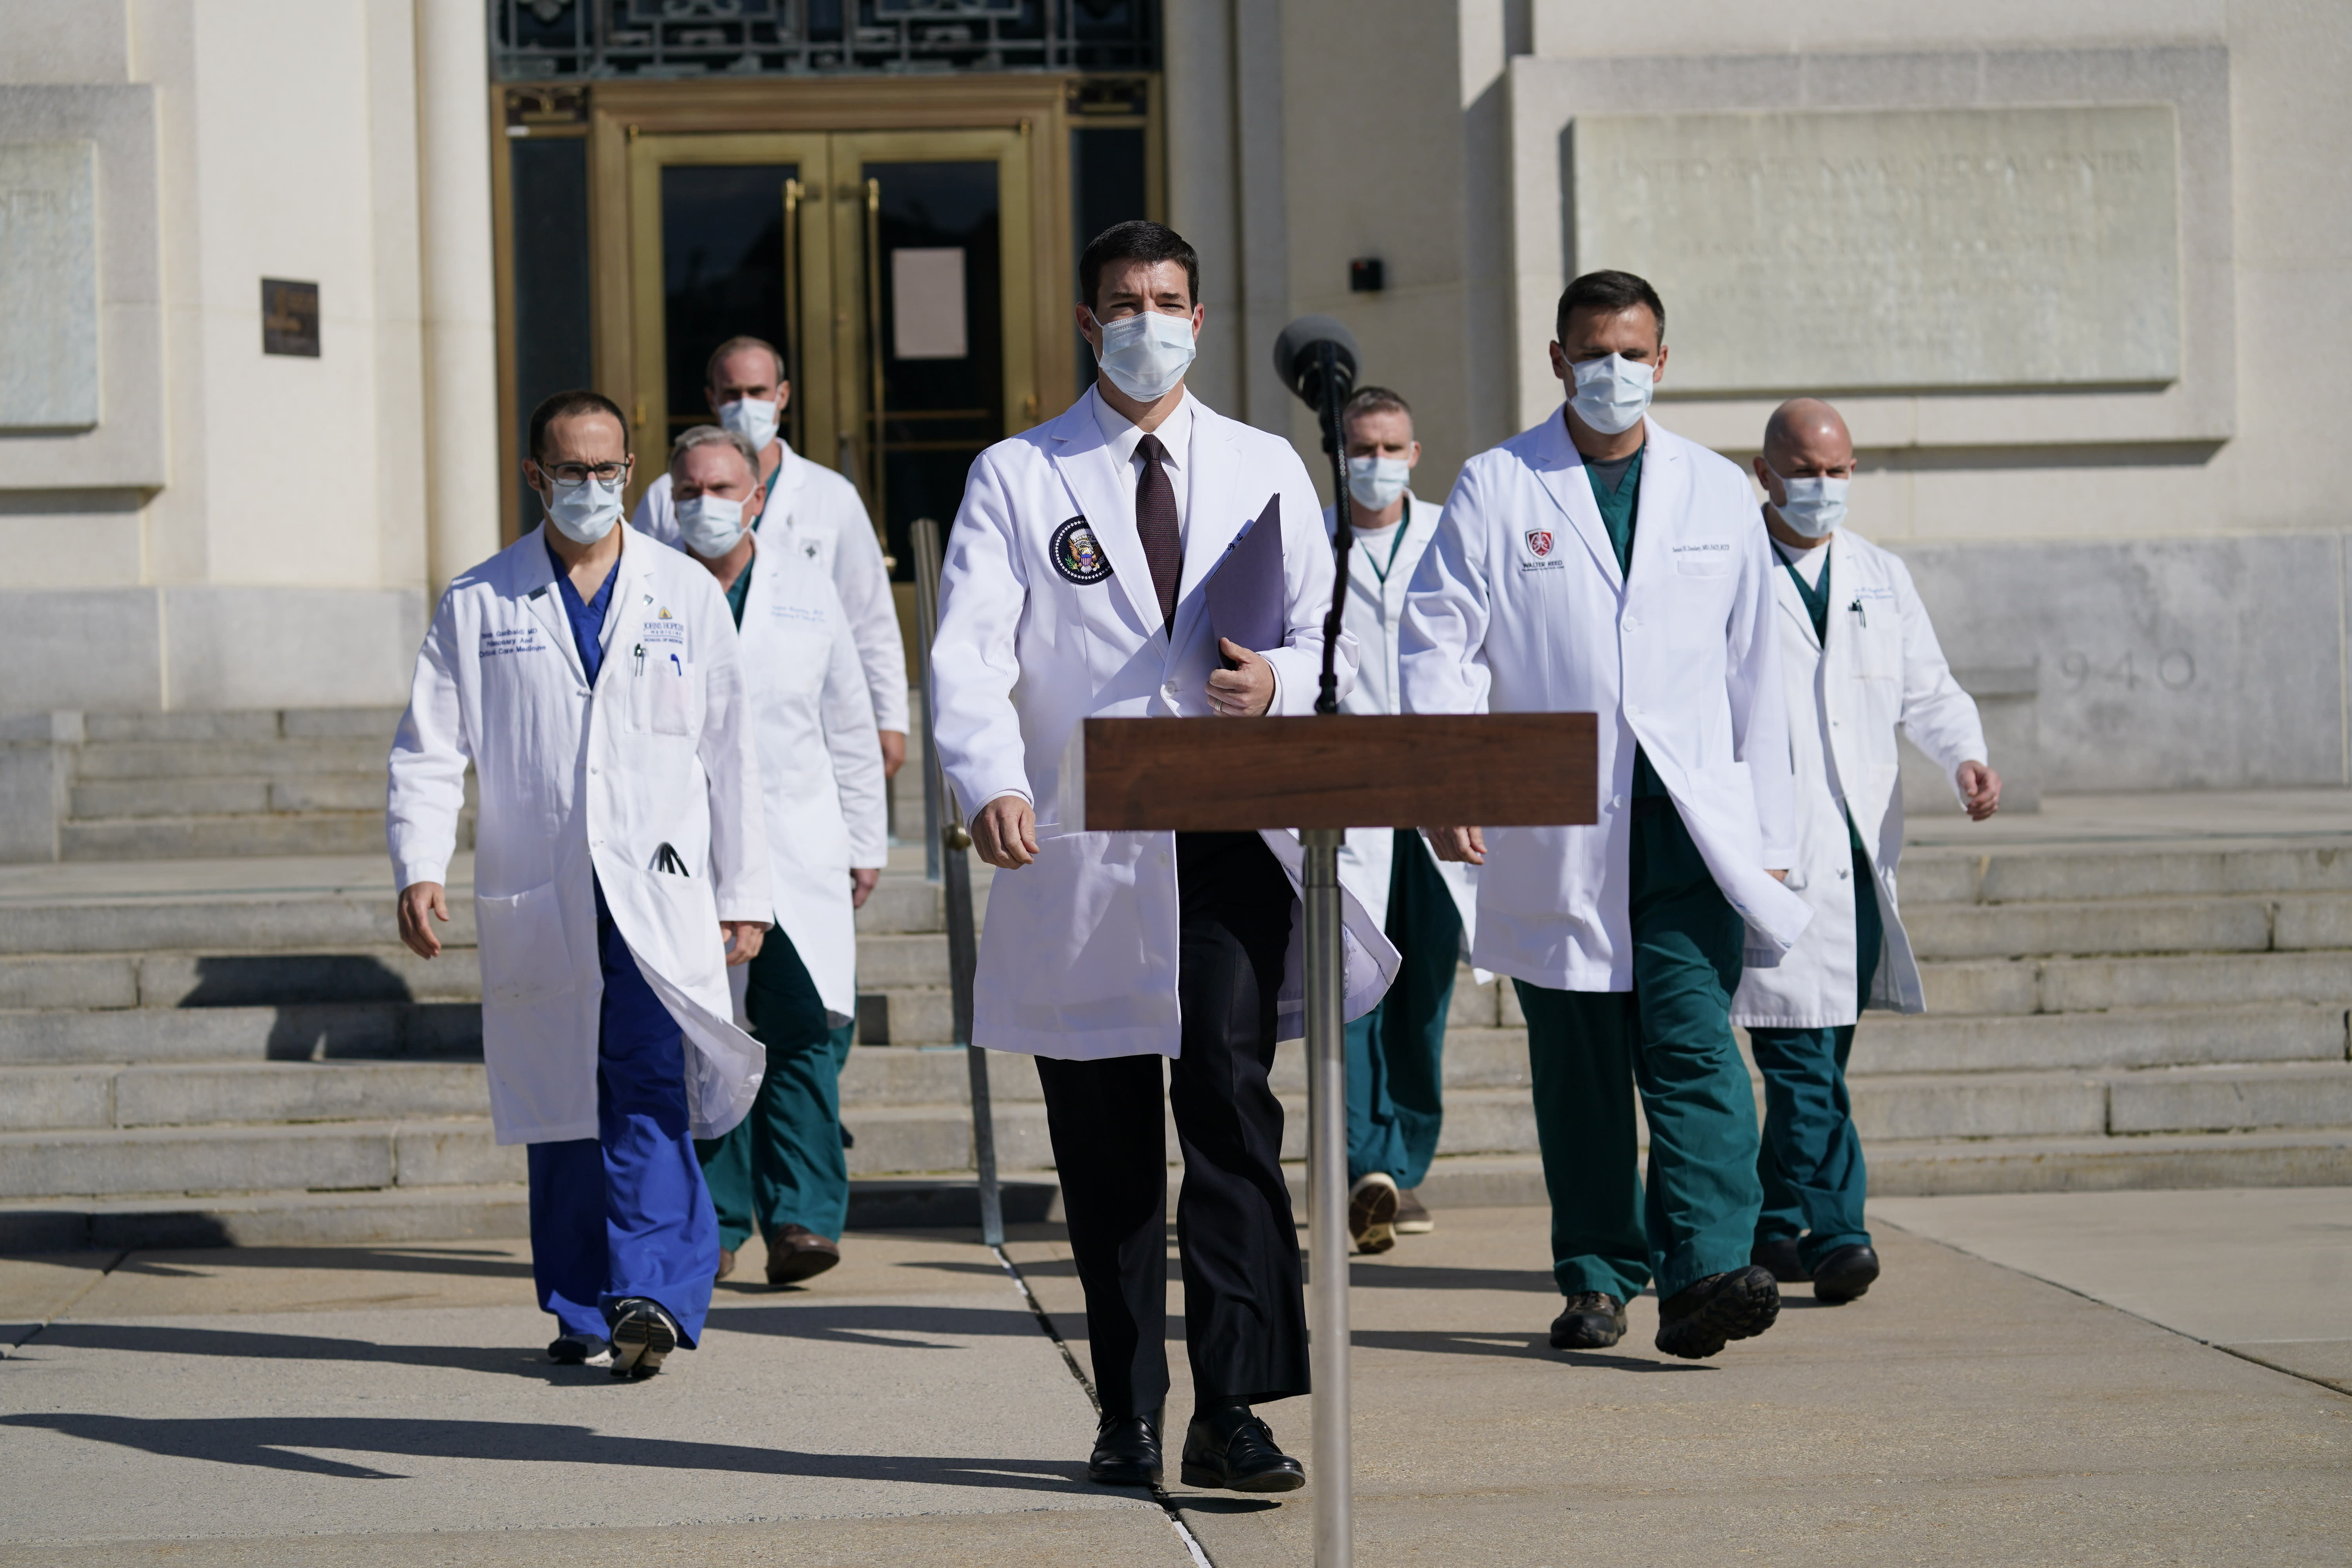 Dr. Sean Conley, physician to President Donald Trump, center, and other doctors, walk out to talk with reporters at Walter Reed National Military Medical Center, Monday, Oct. 5, 2020, in Bethesda, Md. (AP Photo/Evan Vucci)